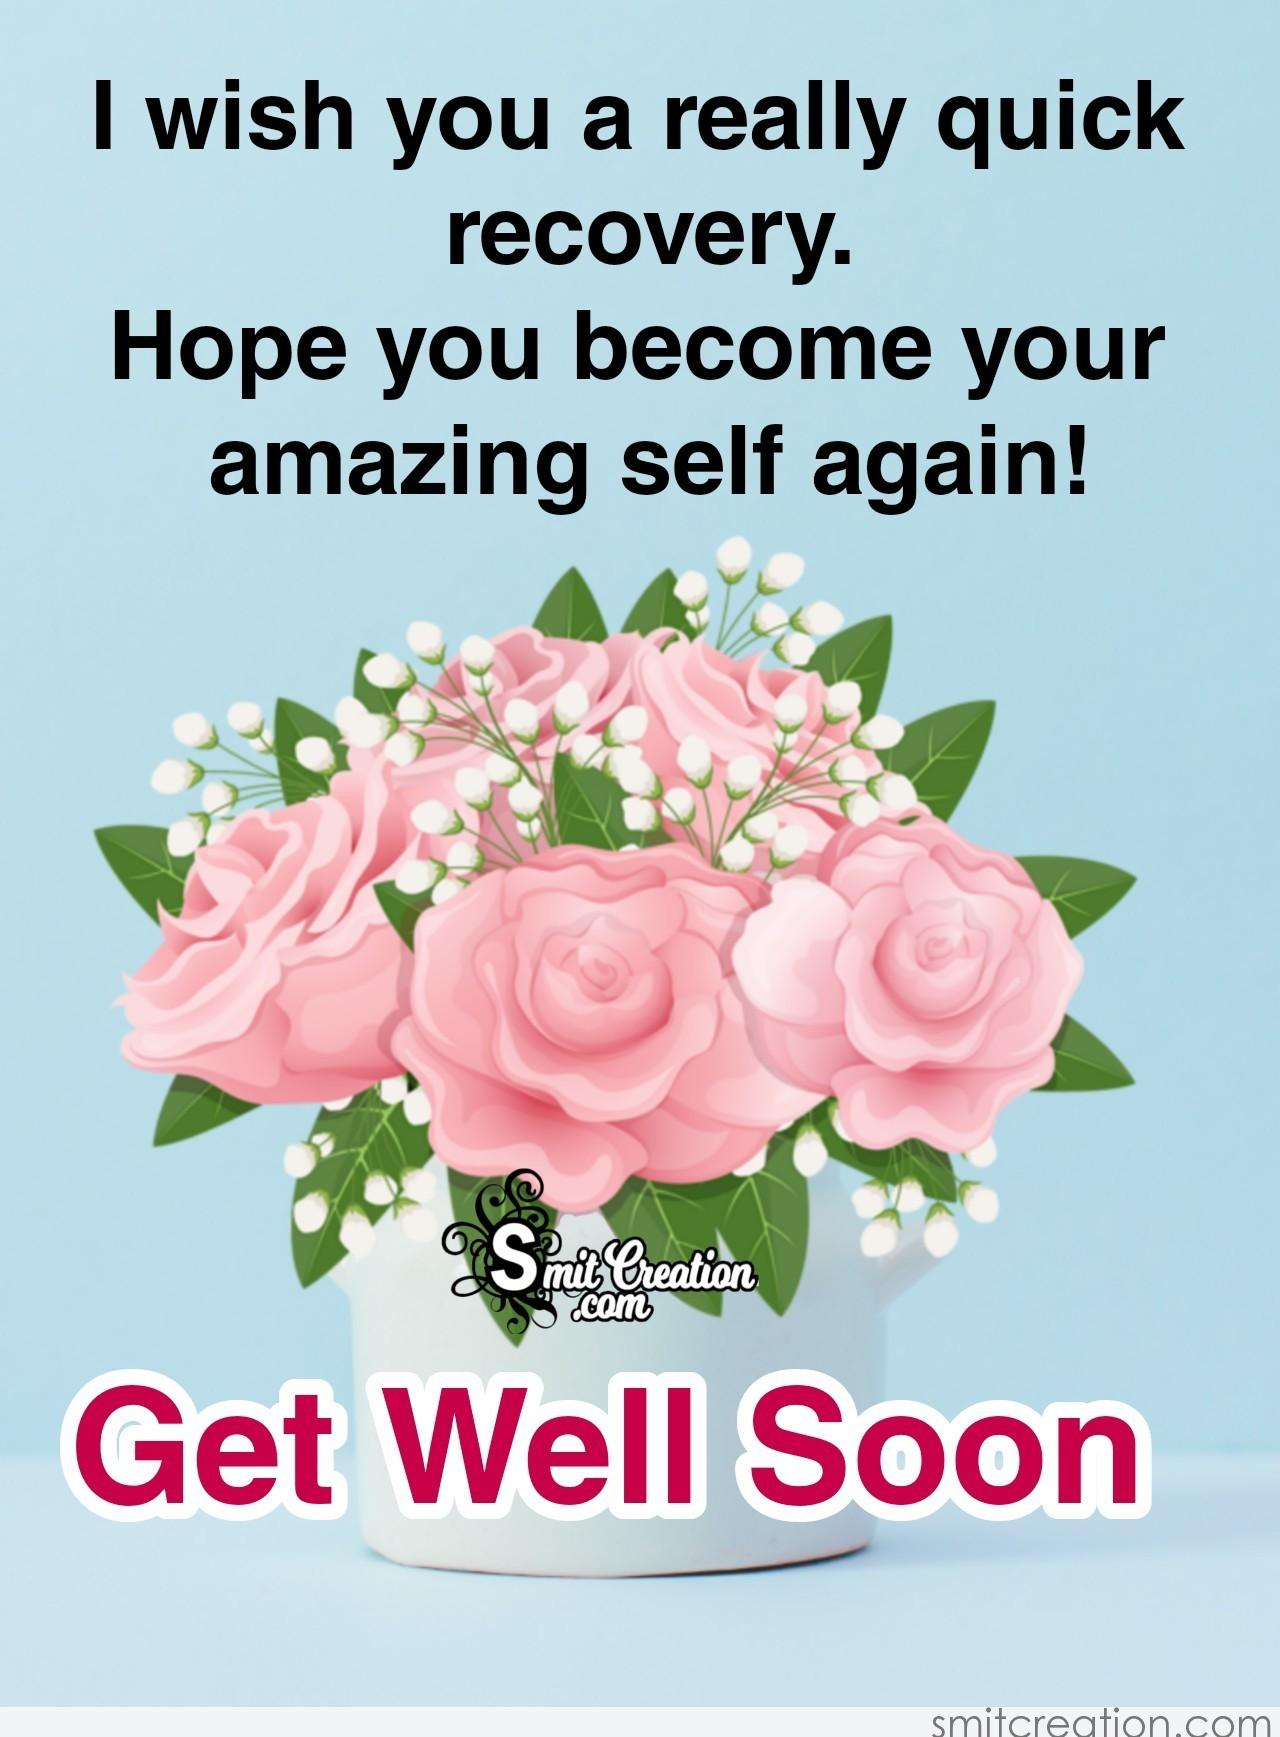 Get Well Soon Recovery Message - SmitCreation.com